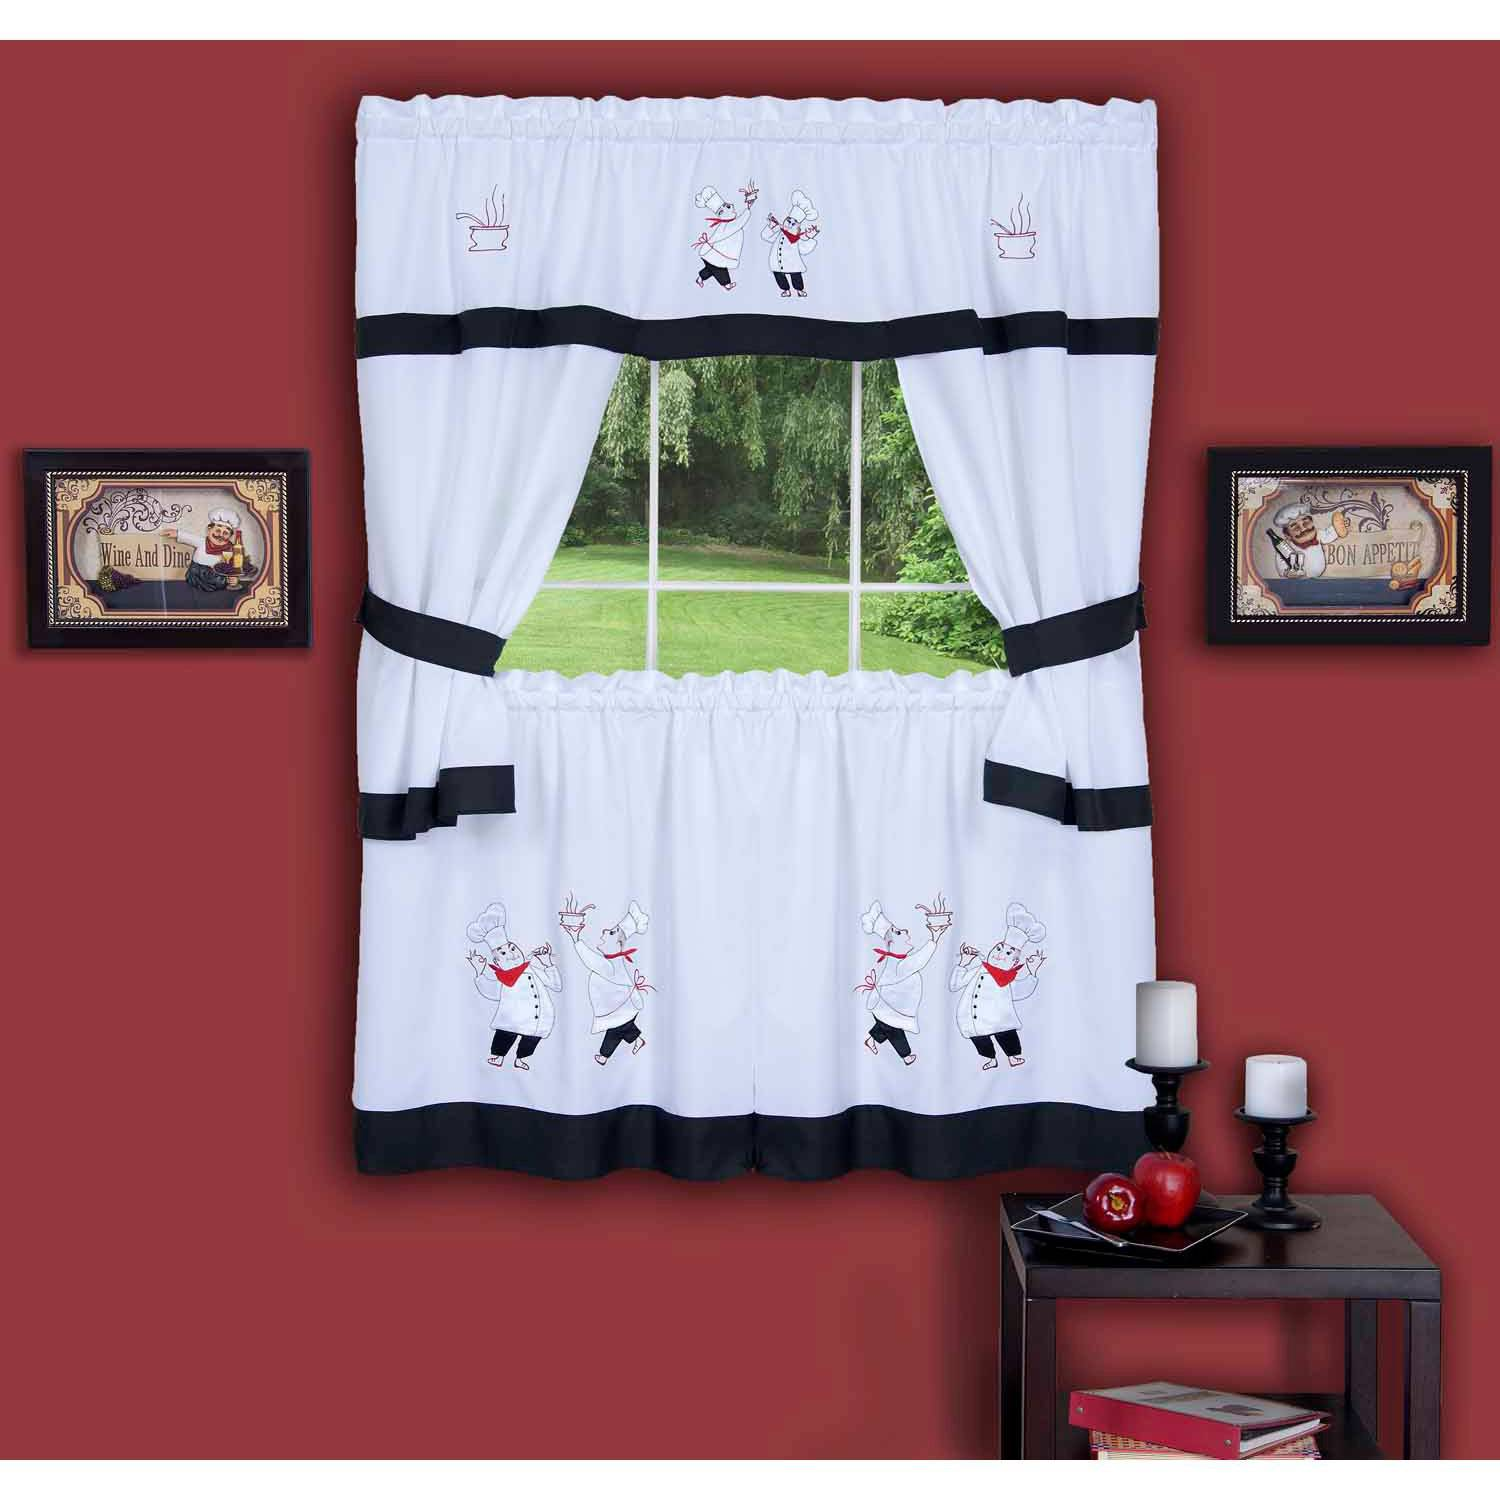 Triangle Shaped Country Kitchen Curtains e The